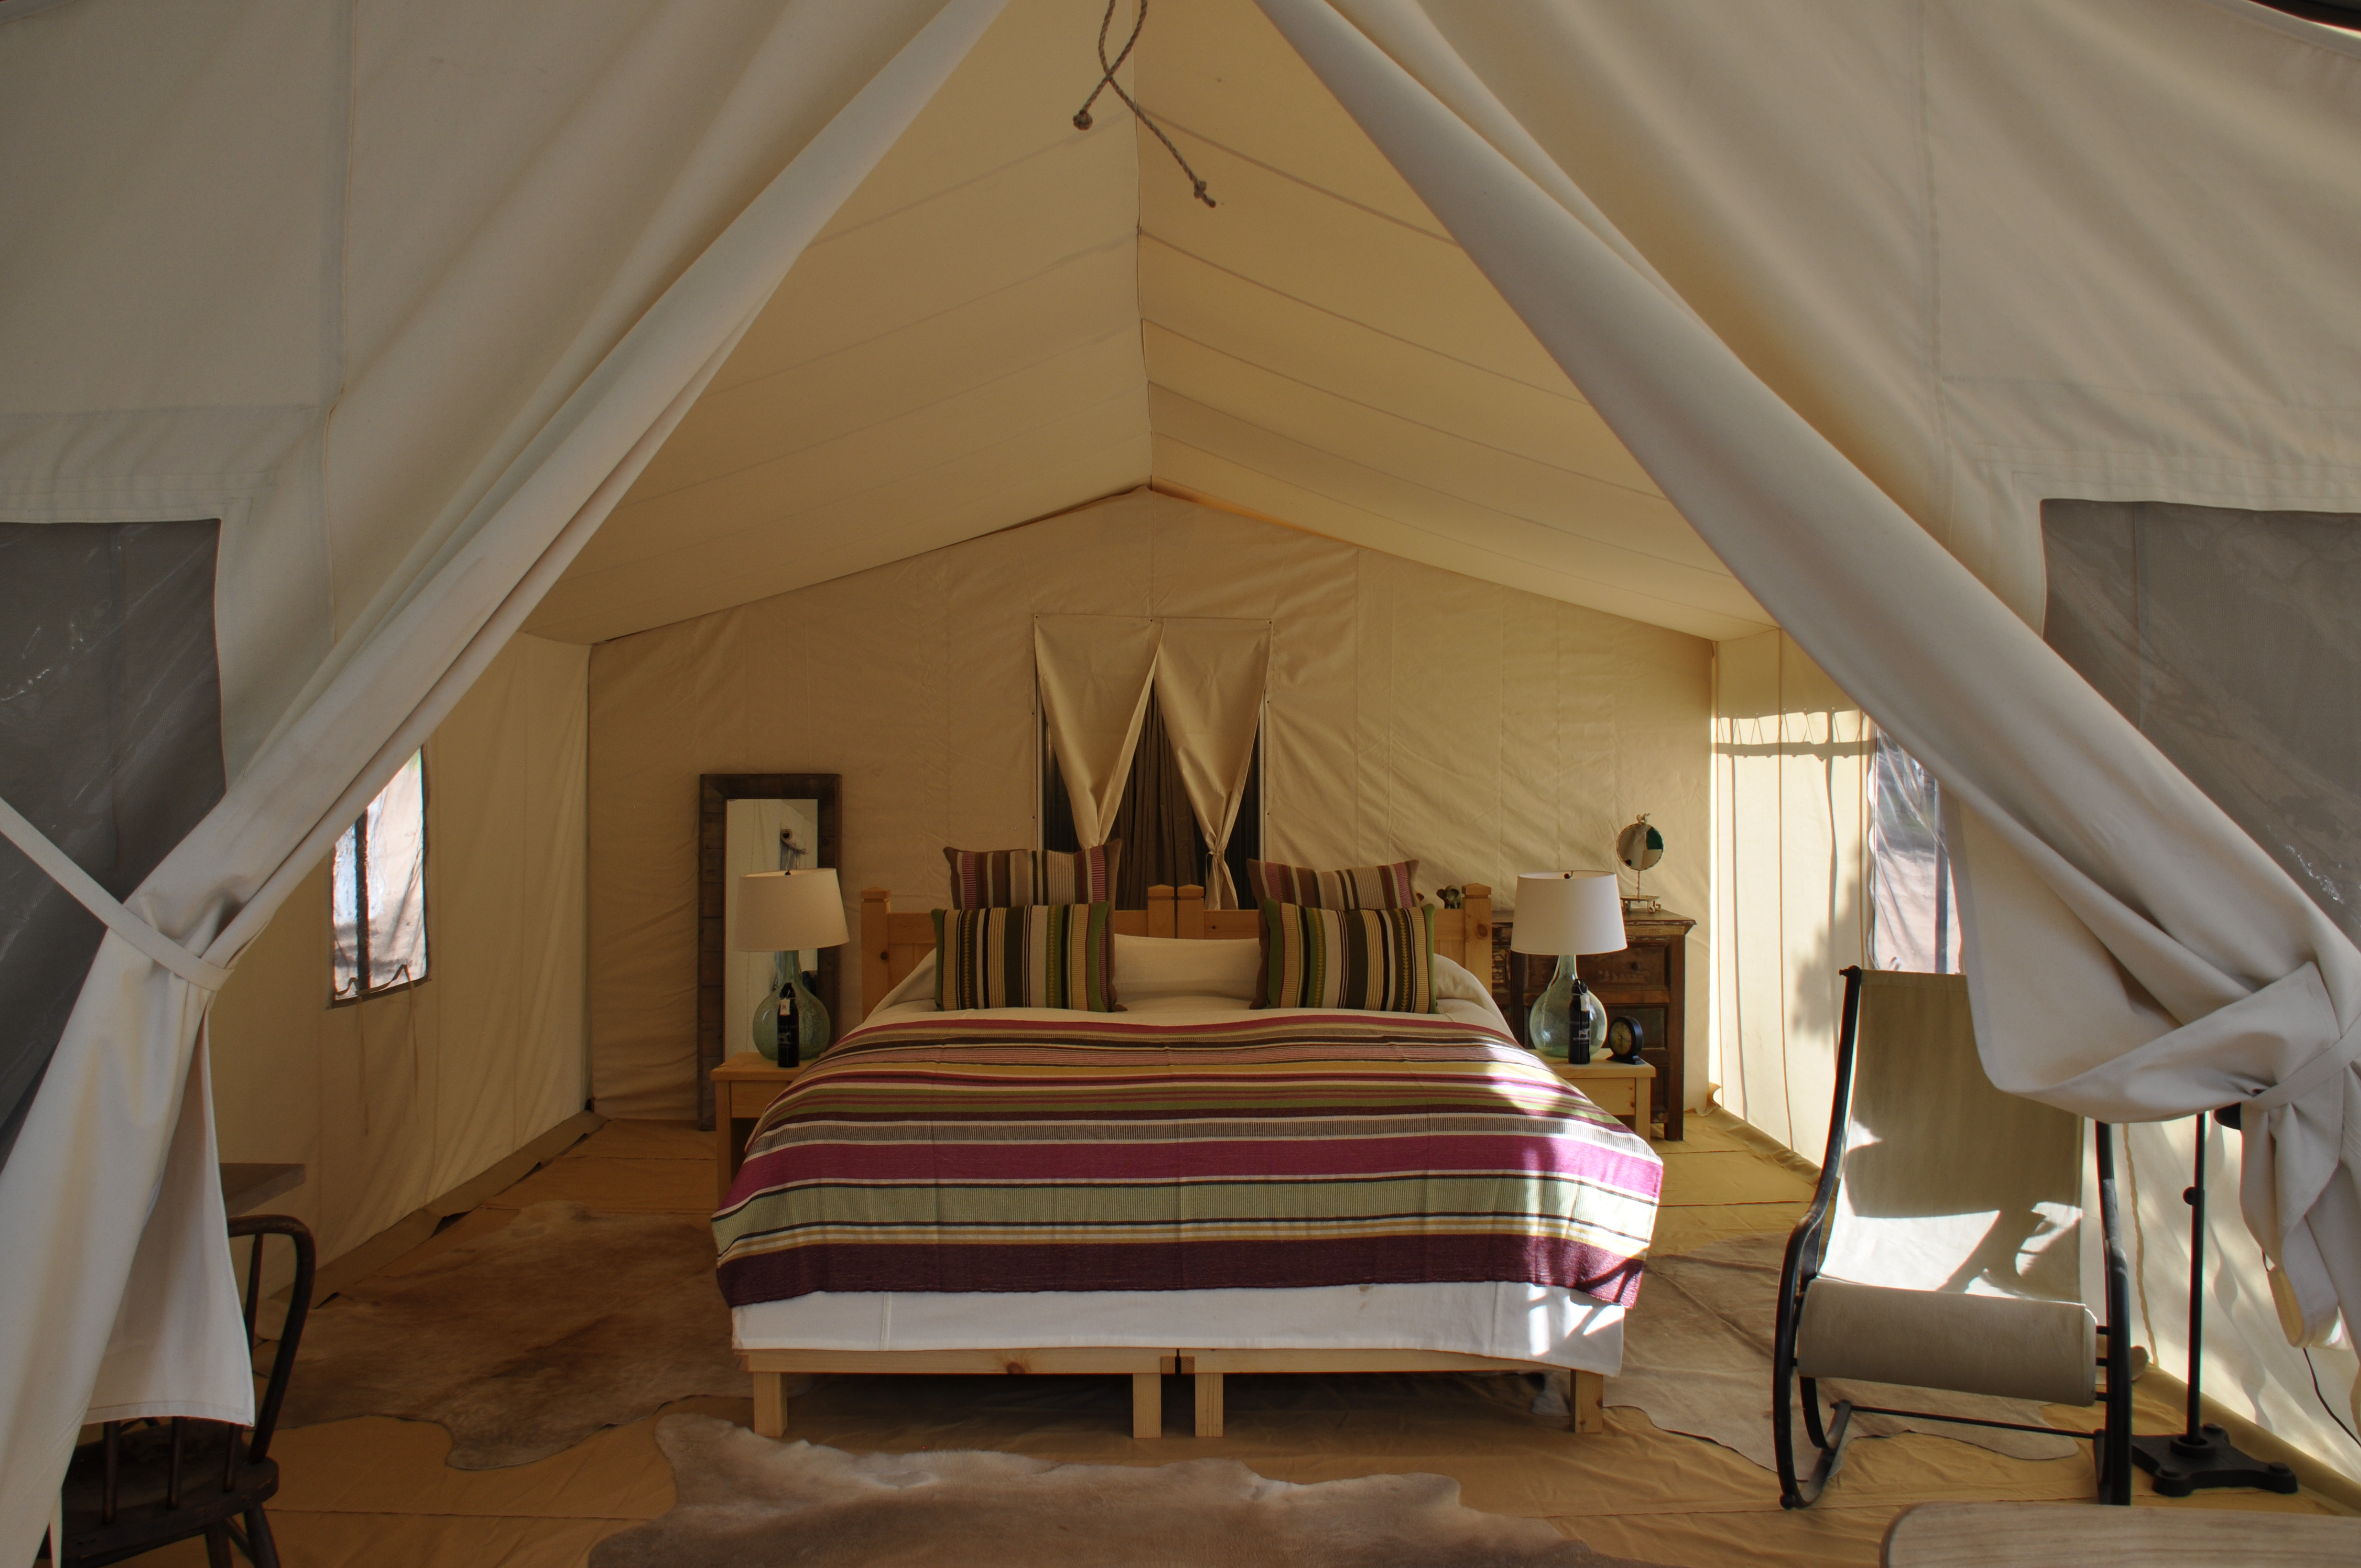 Safari-Style Camping In Colorado, Glam Bedding Included